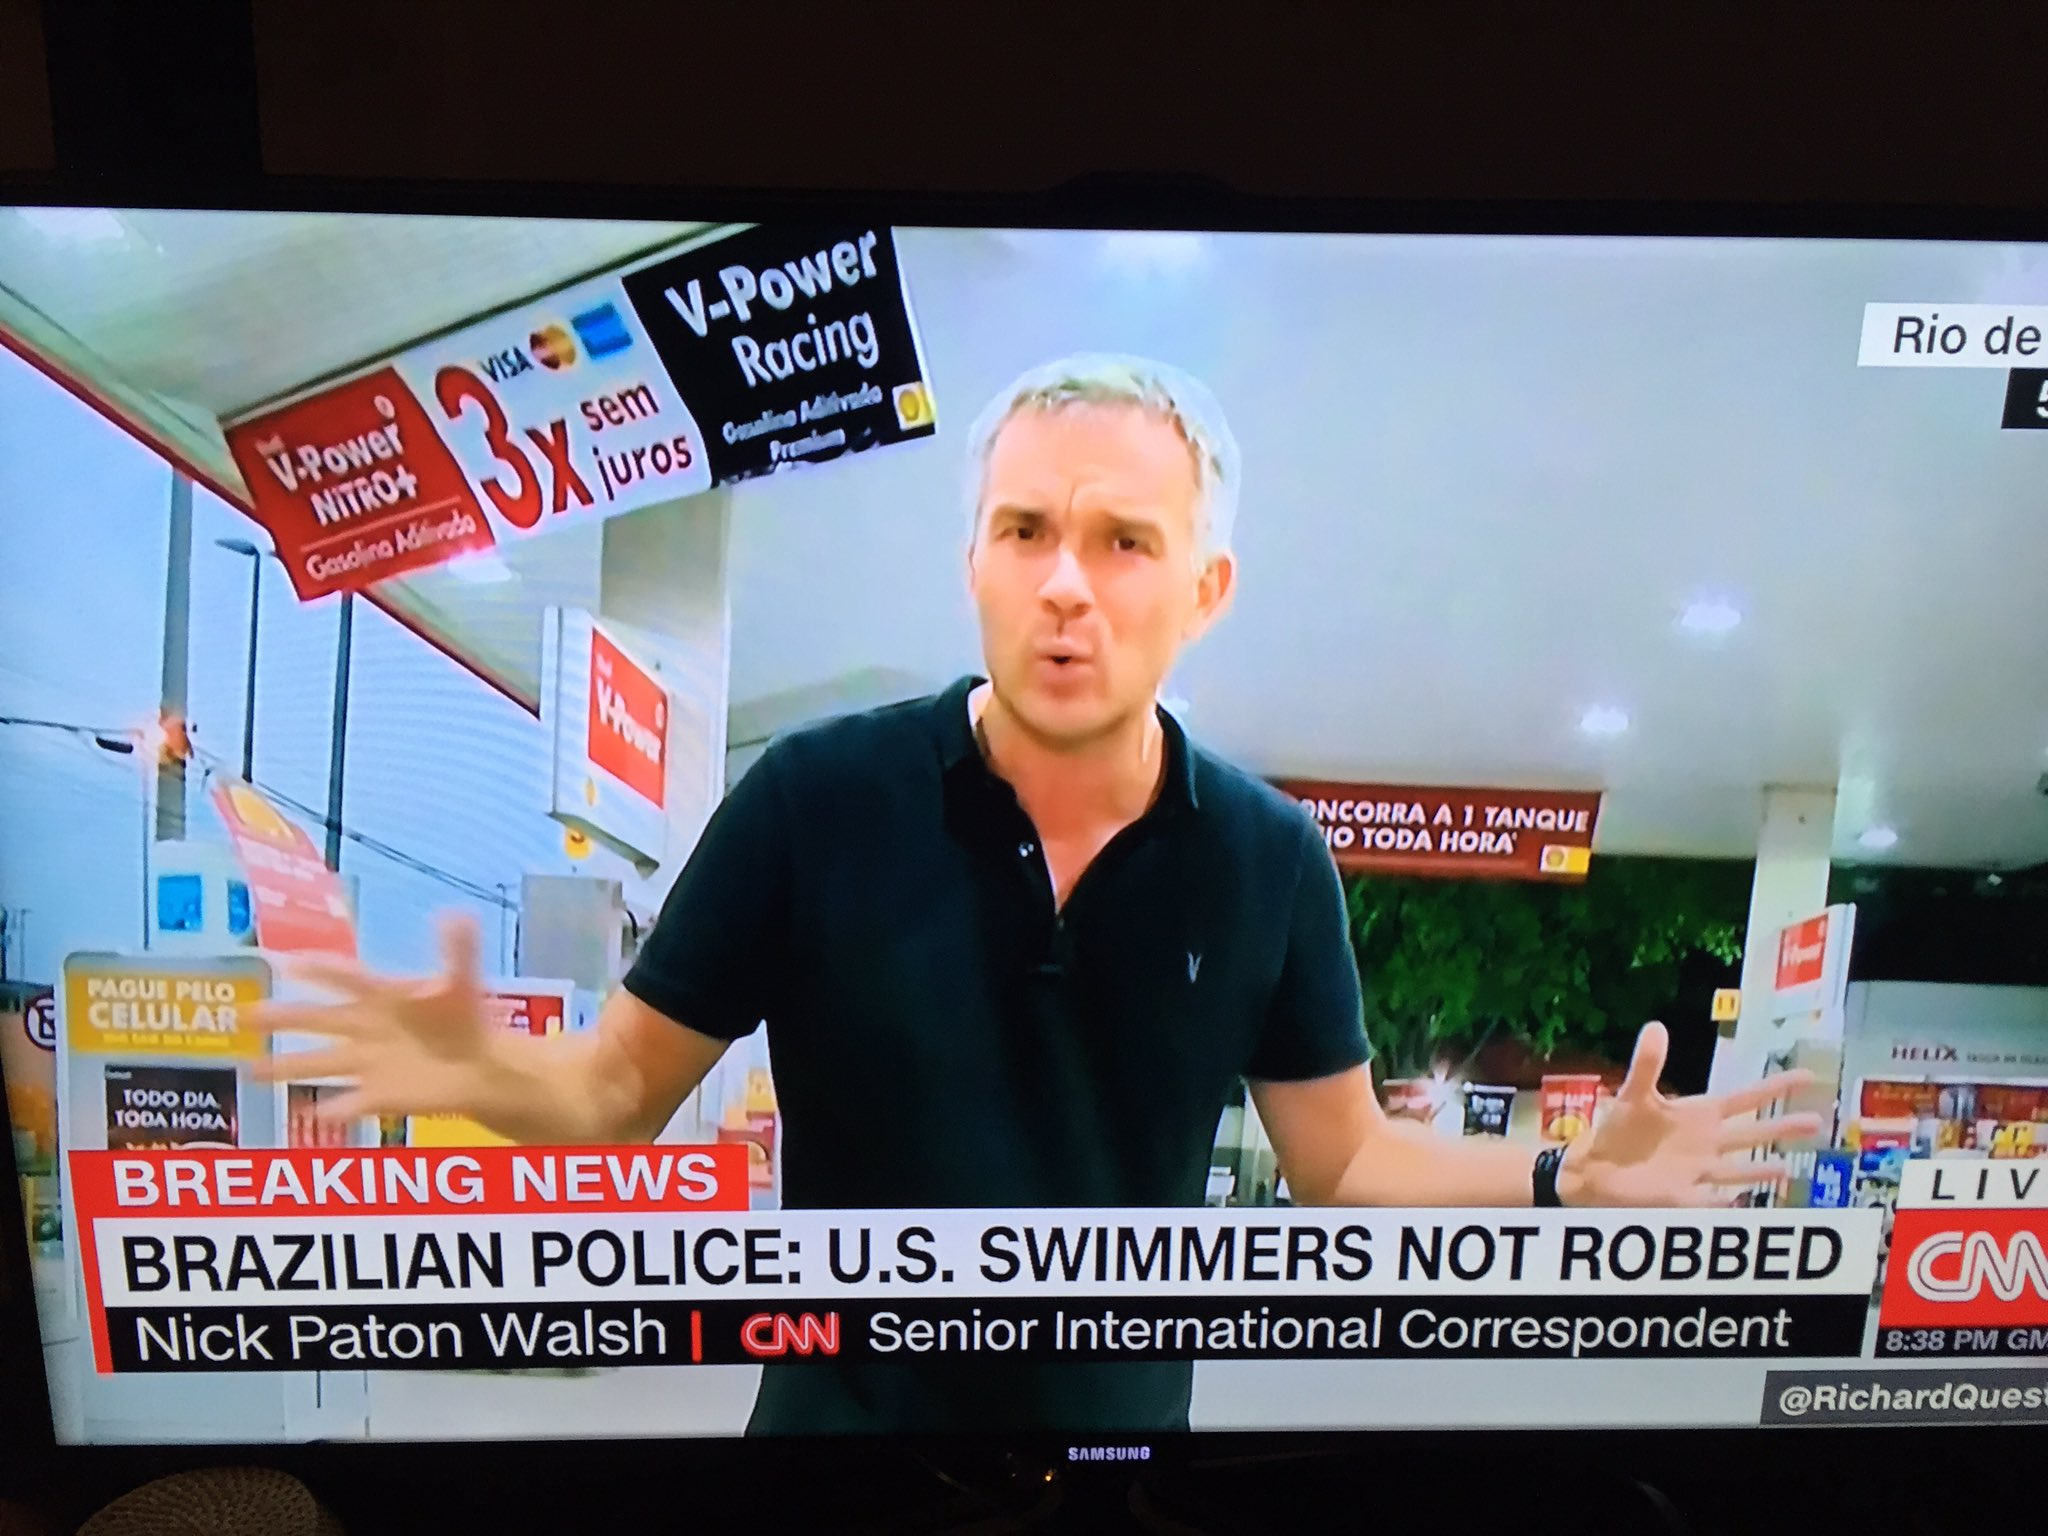 I lived long enough to see CNN live from a random gas station in Brazil reporting about alleged urinating. https://t.co/ipiqTPeosG